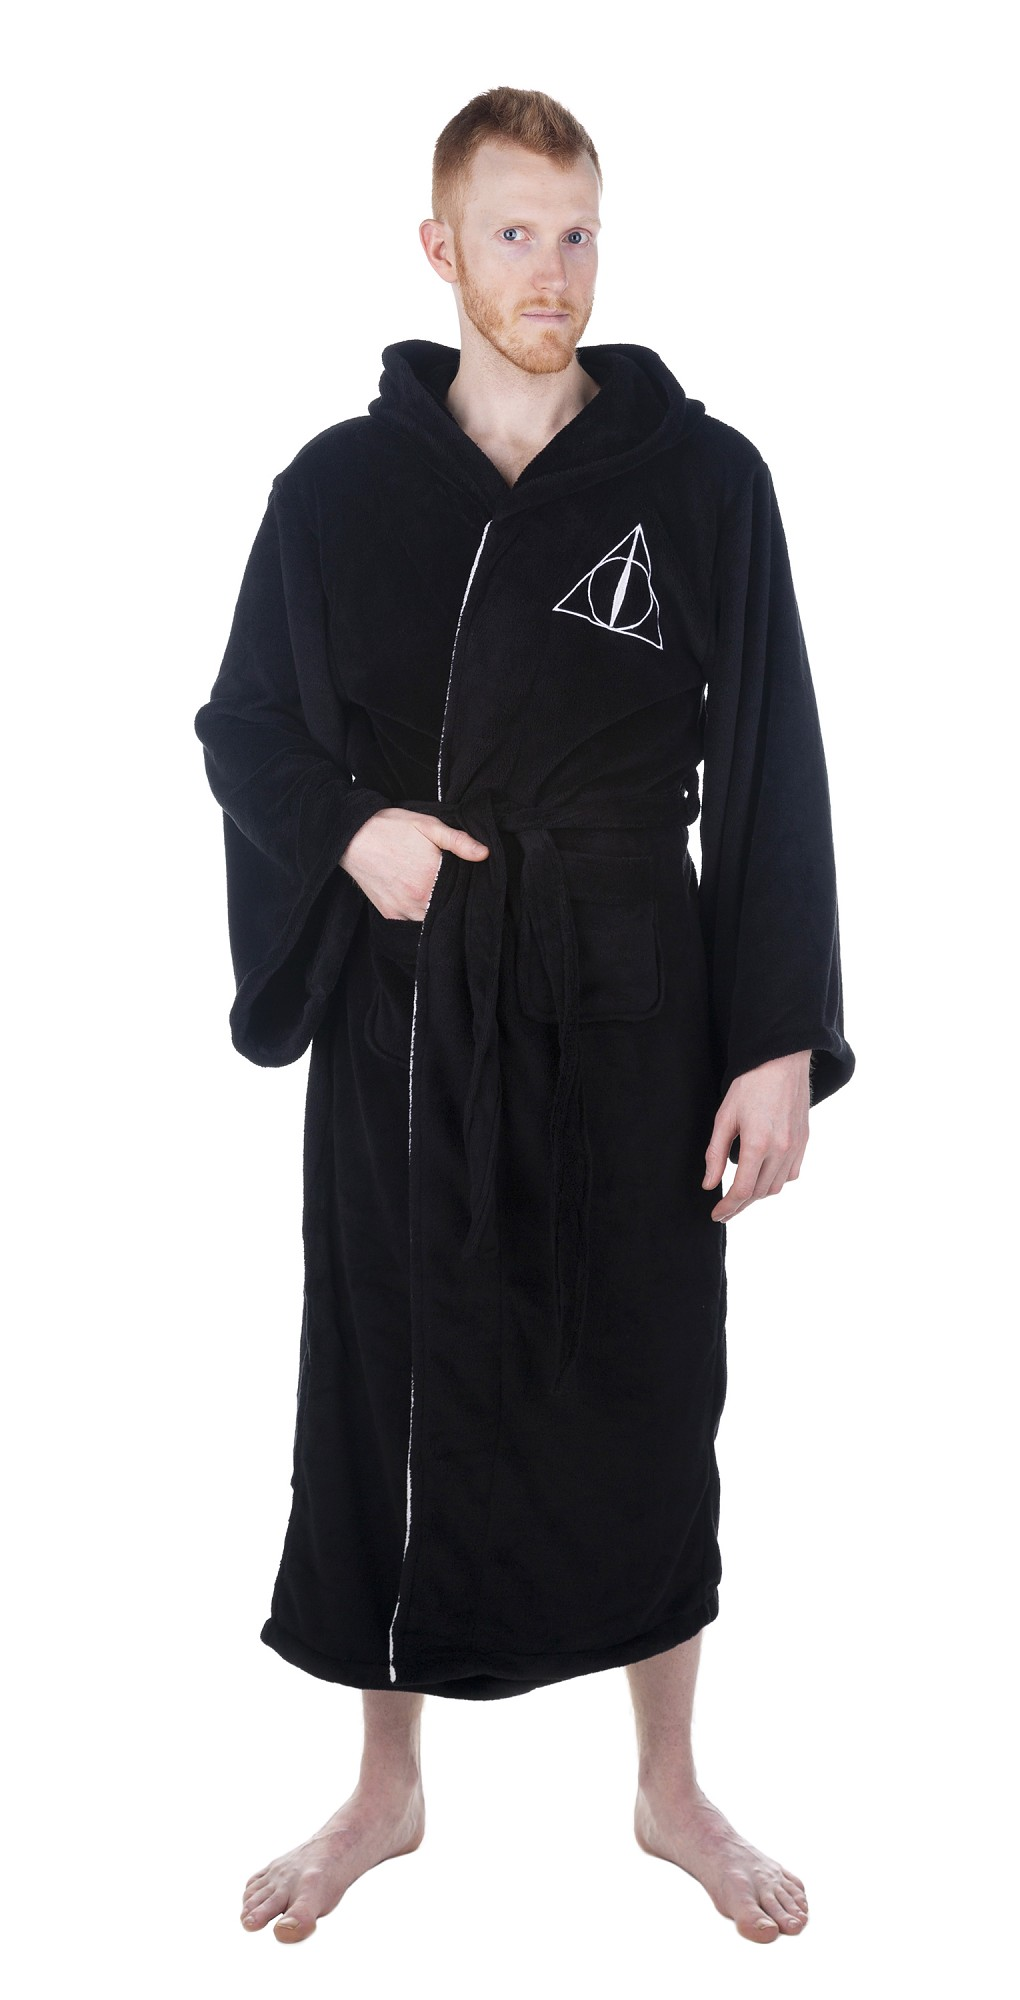 Men\'s Black Harry Potter Deathly Hallows Hooded Fleece Dressing Gown